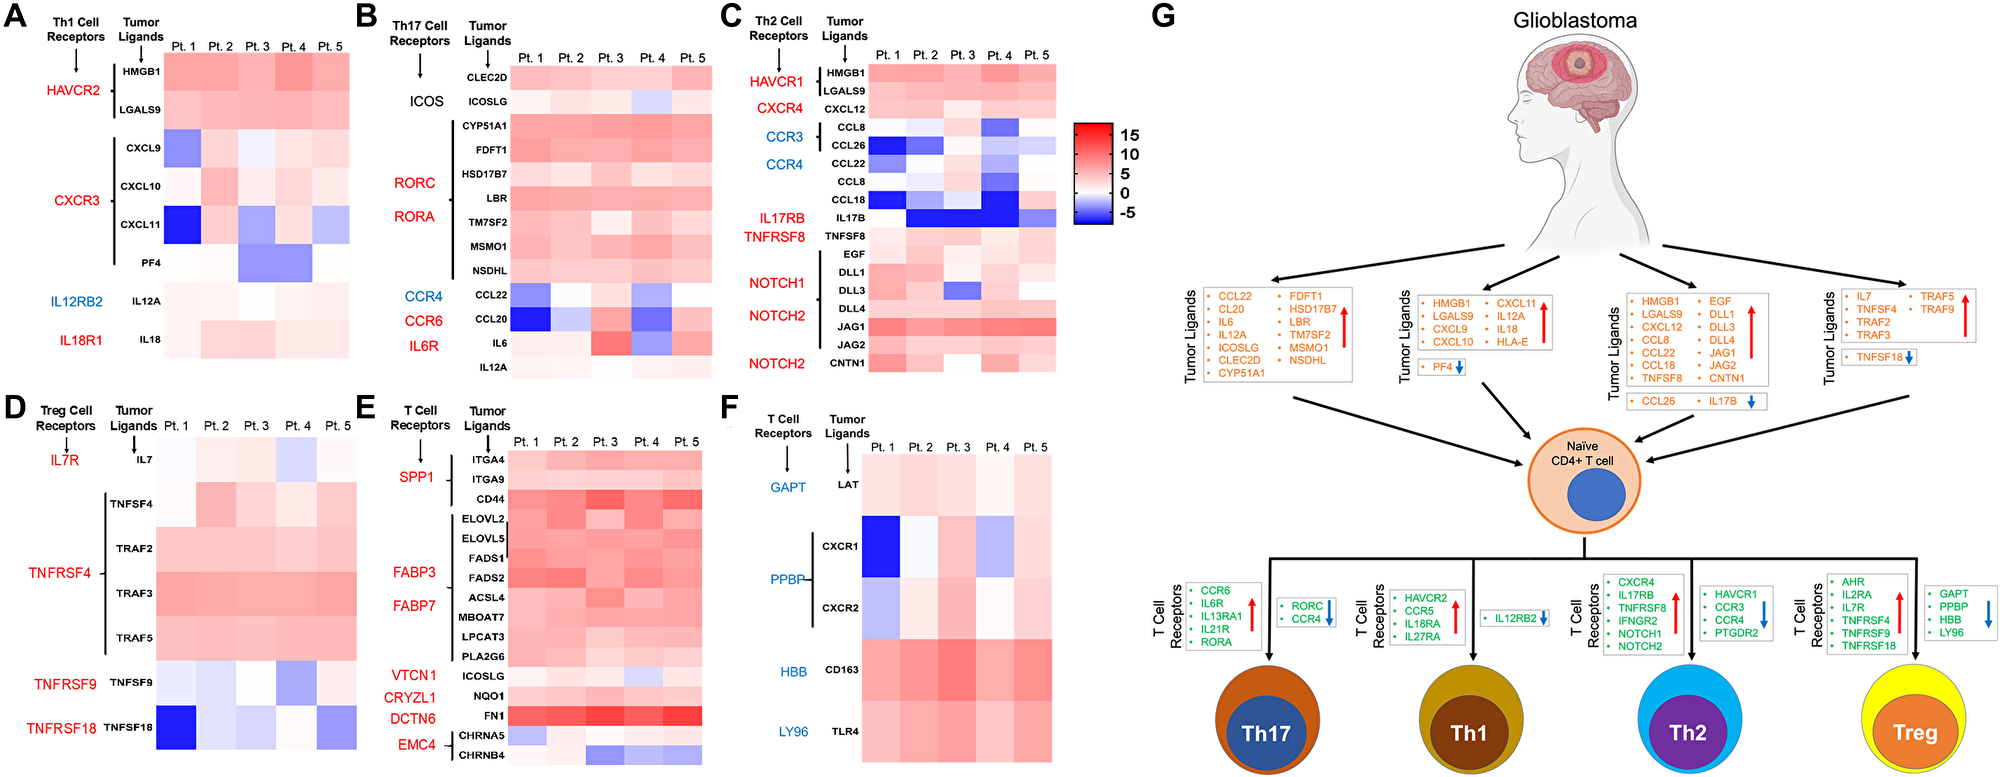 Expression pattern of ligands of corresponding receptors specific for CD4+ T cell lineages in GBM tumor tissue.